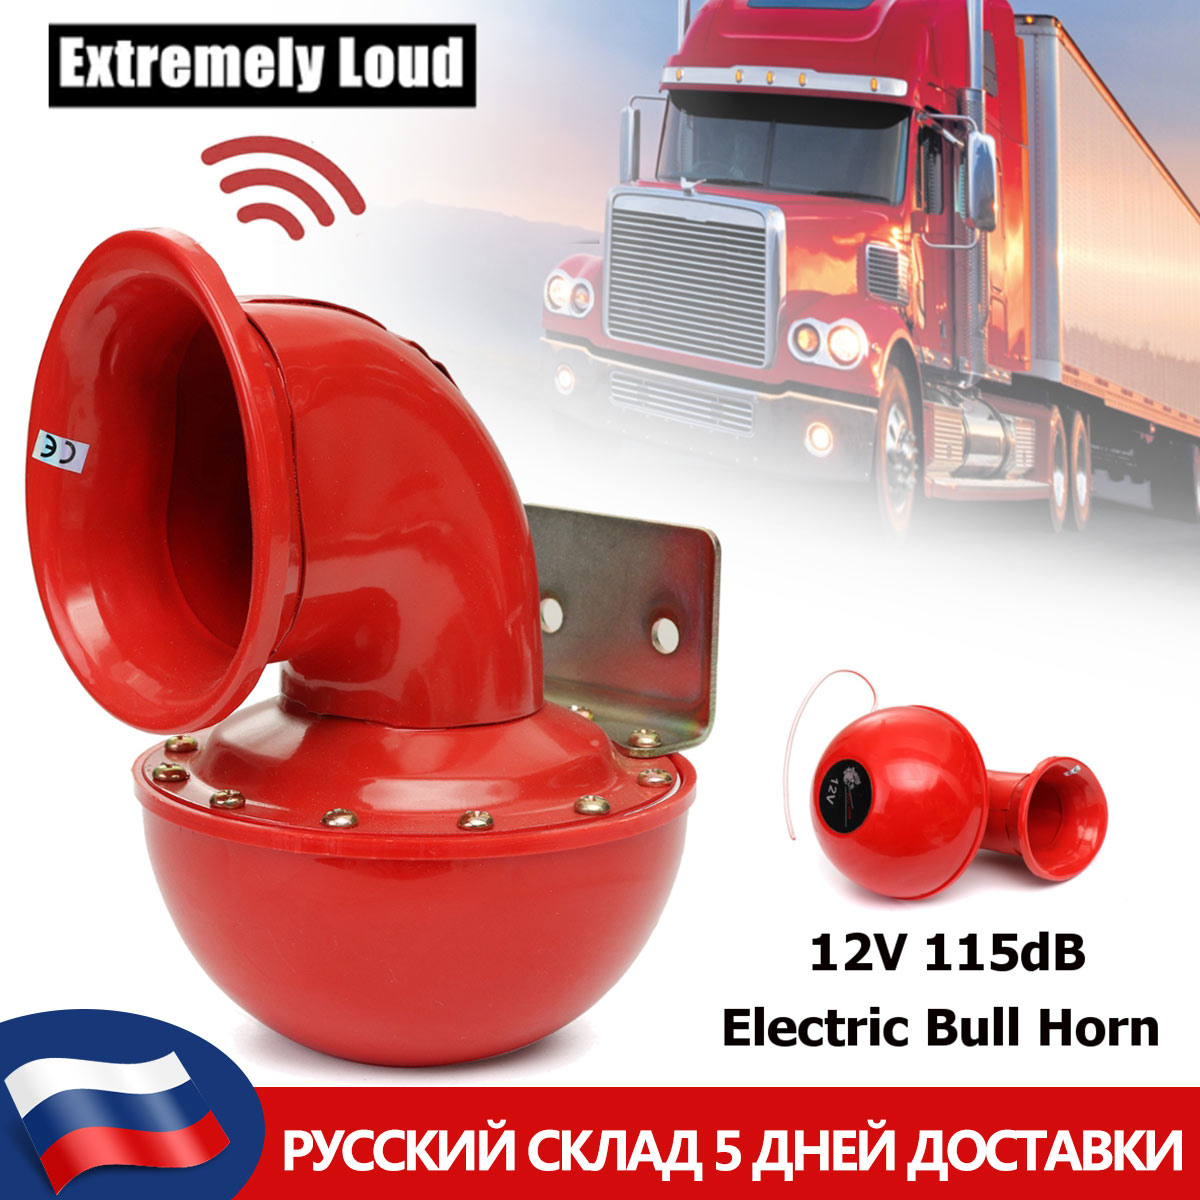 12V 115dB Electric Bull Horn Easy Hook-Up Car Truck Boat Motorcycle Lowrider